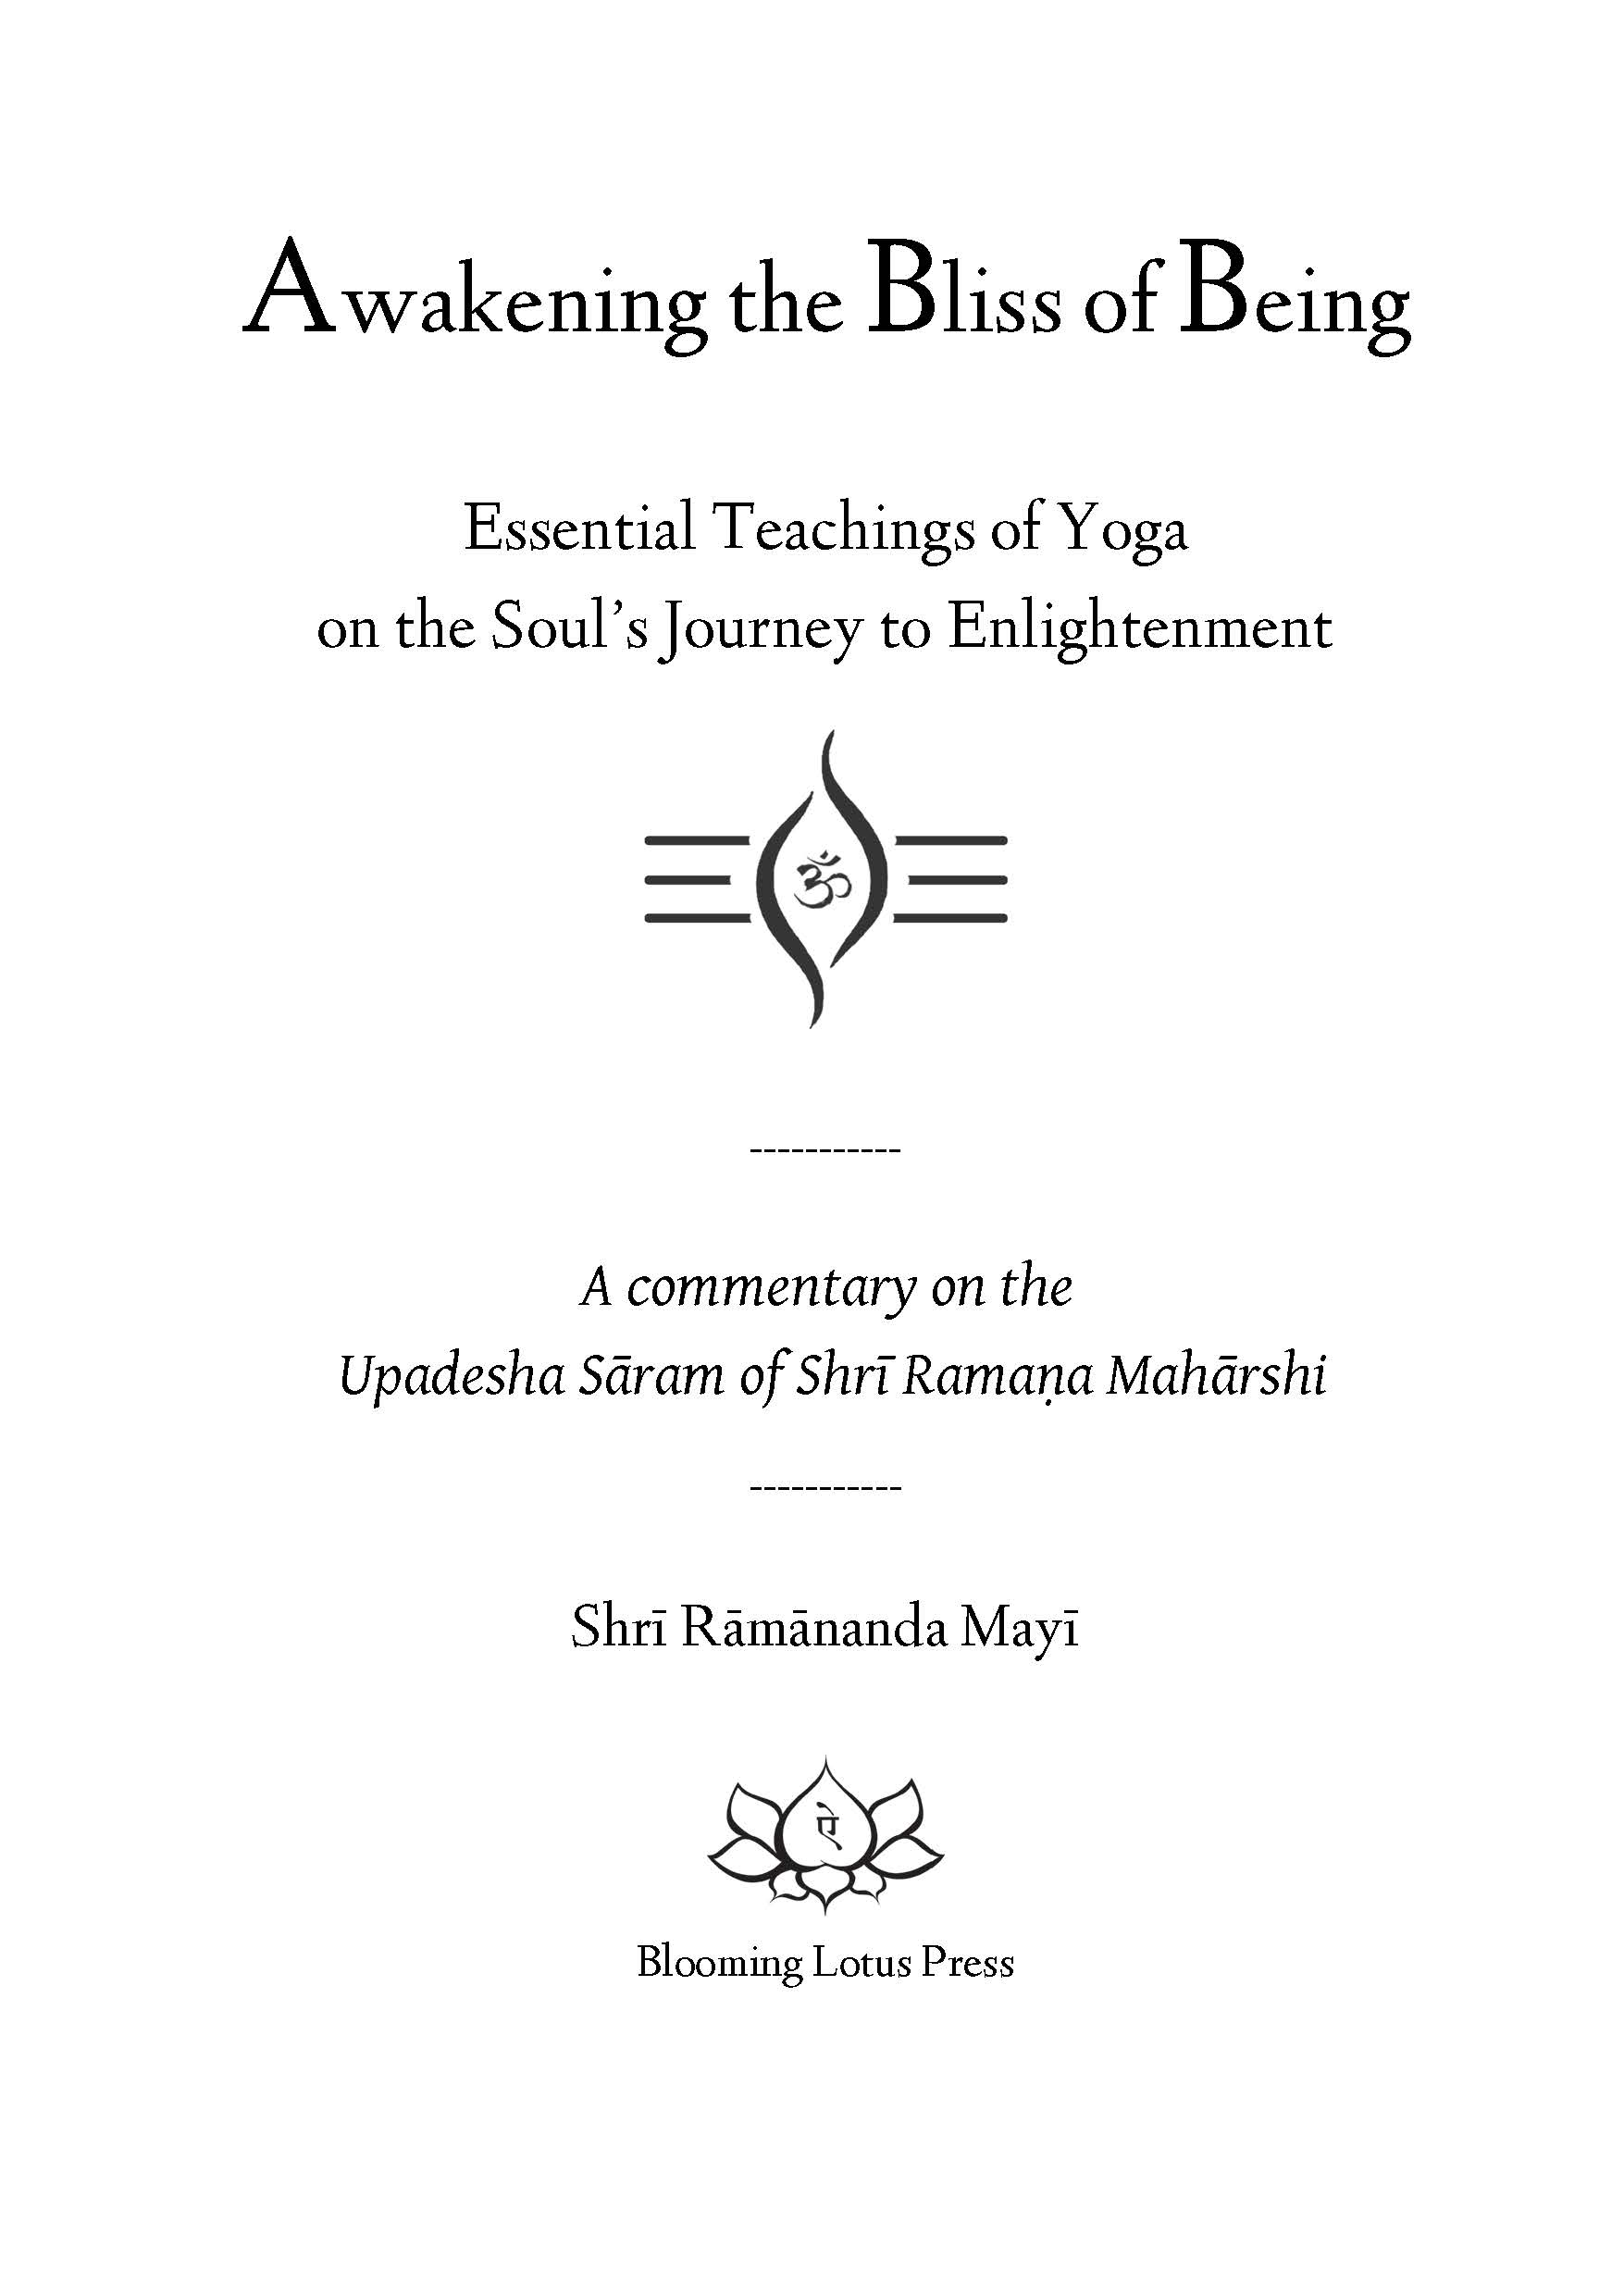 Awakening the Bliss of Being - PDF Download_Page_002